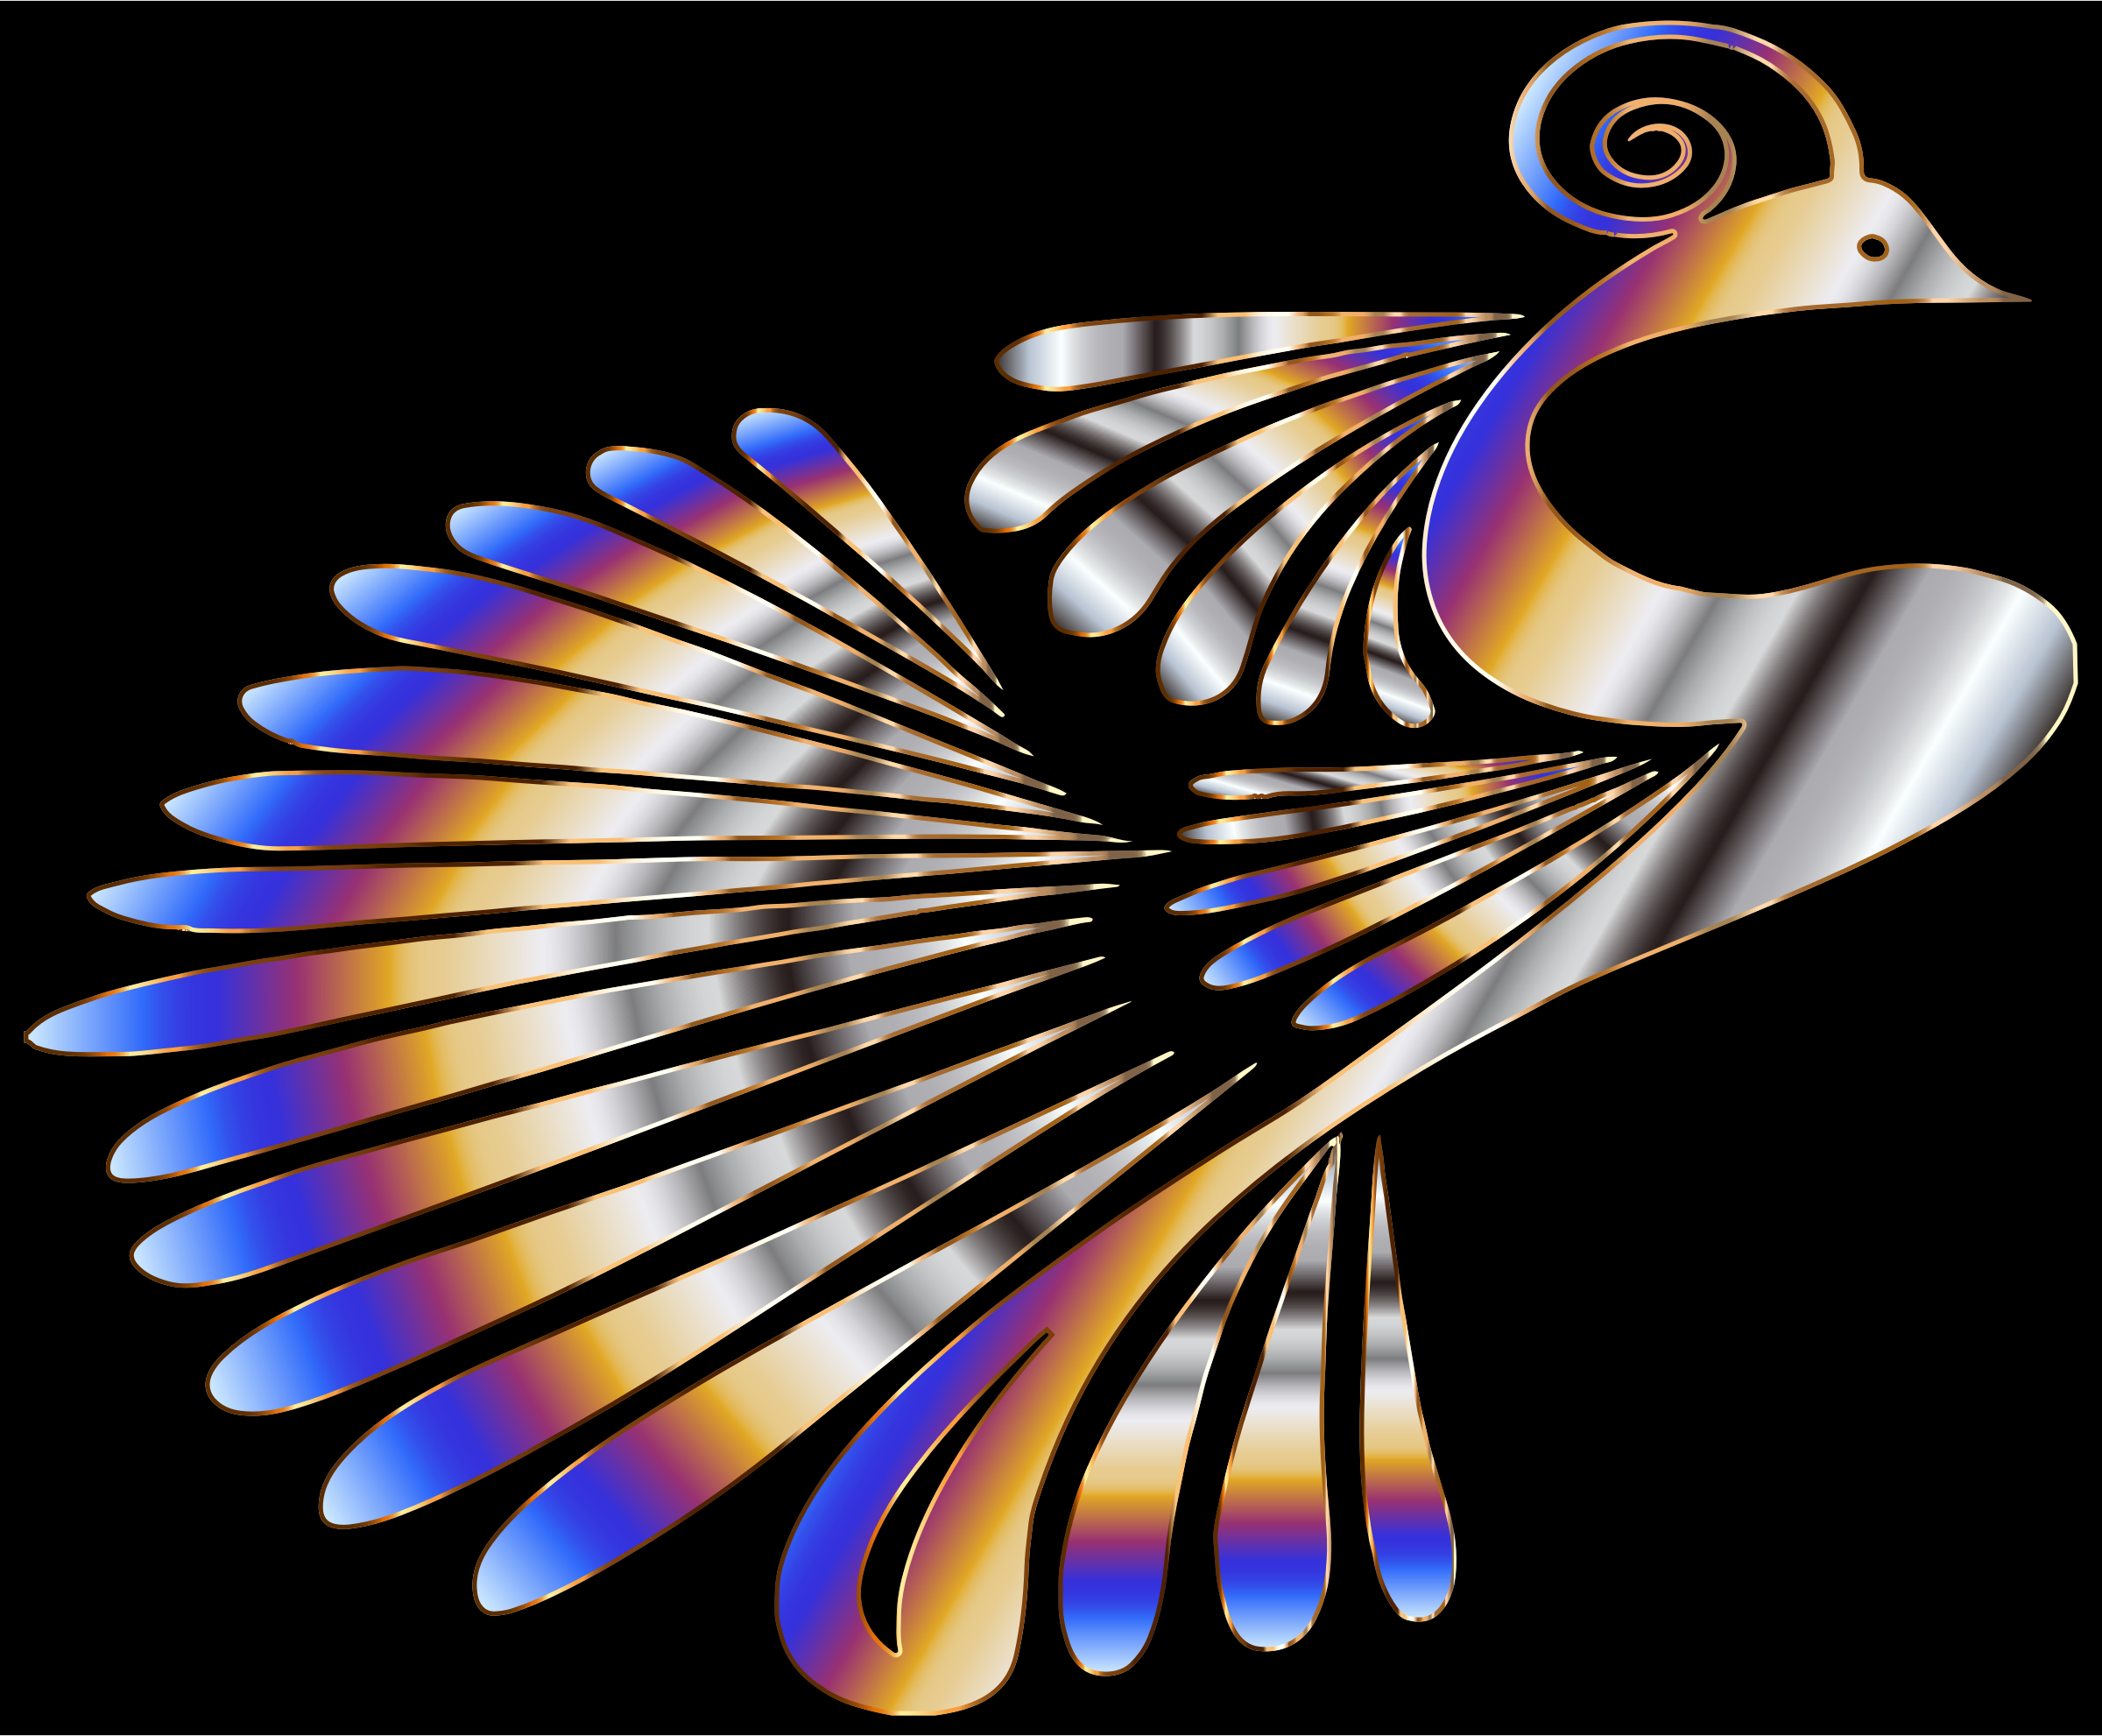 Colorful Stylized Peacock 8 by GDJ